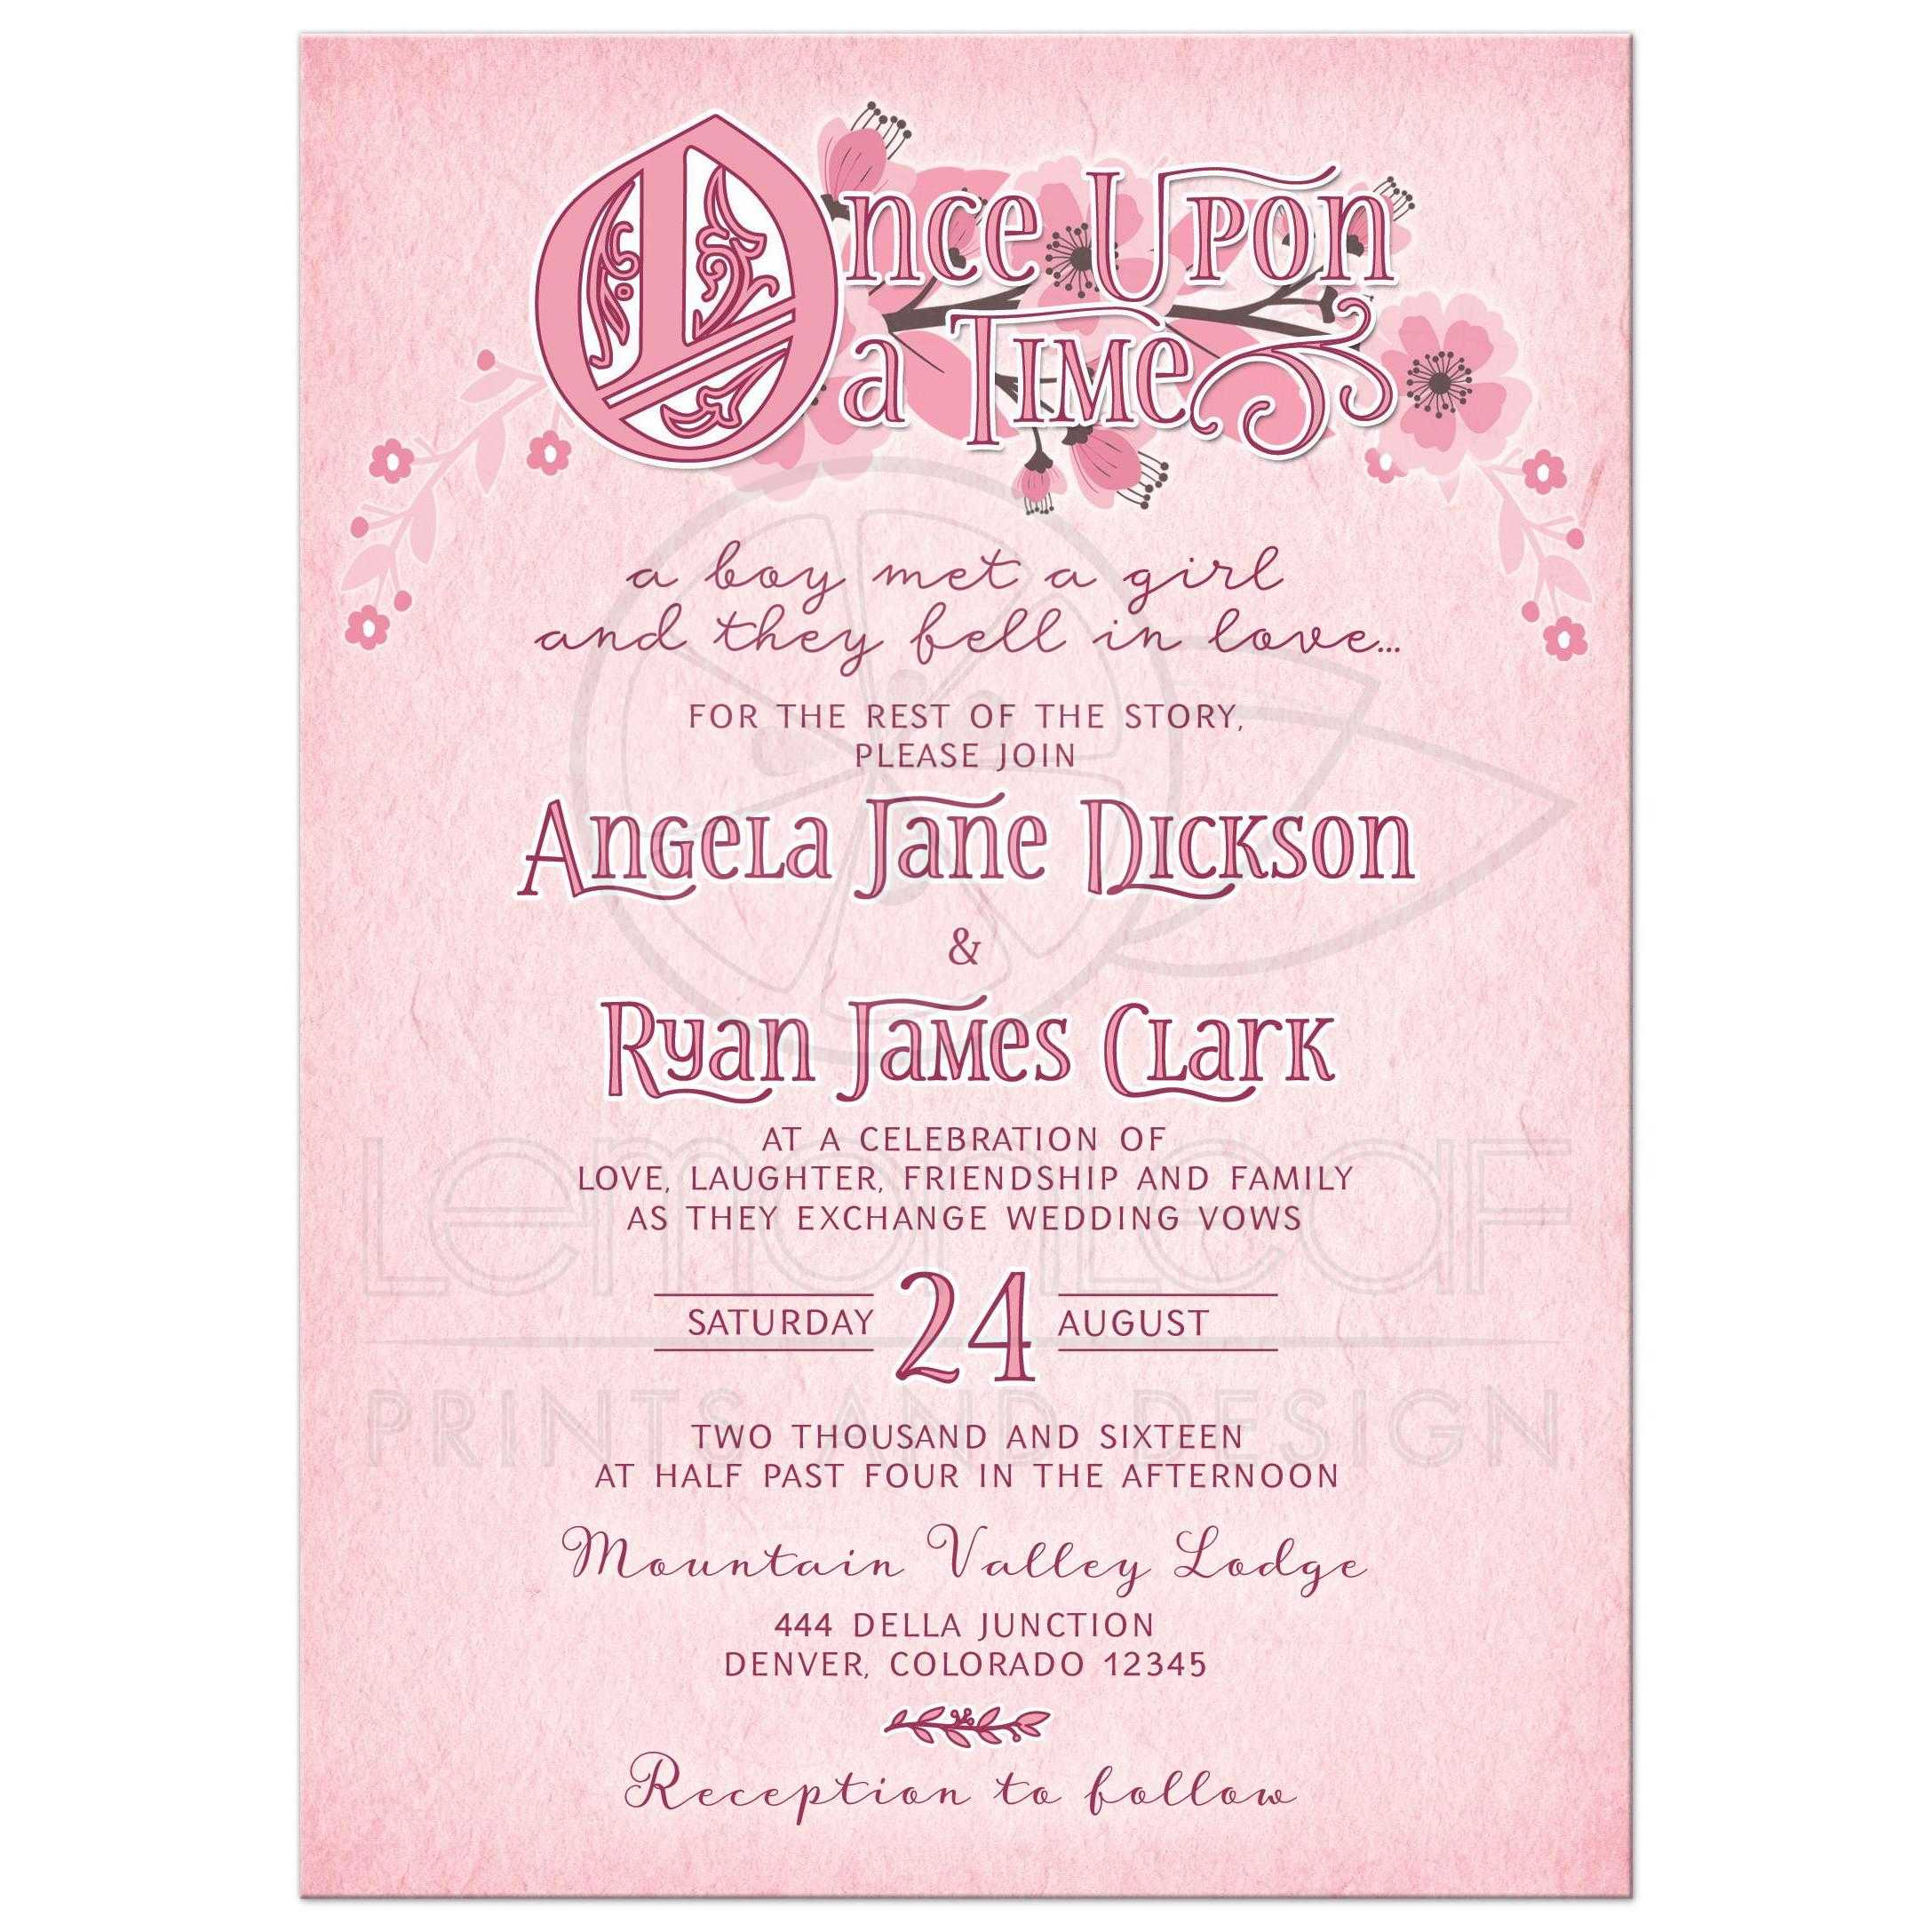 Whimsical Fairy Tale Floral Wedding Invitation Pink and Burgundy